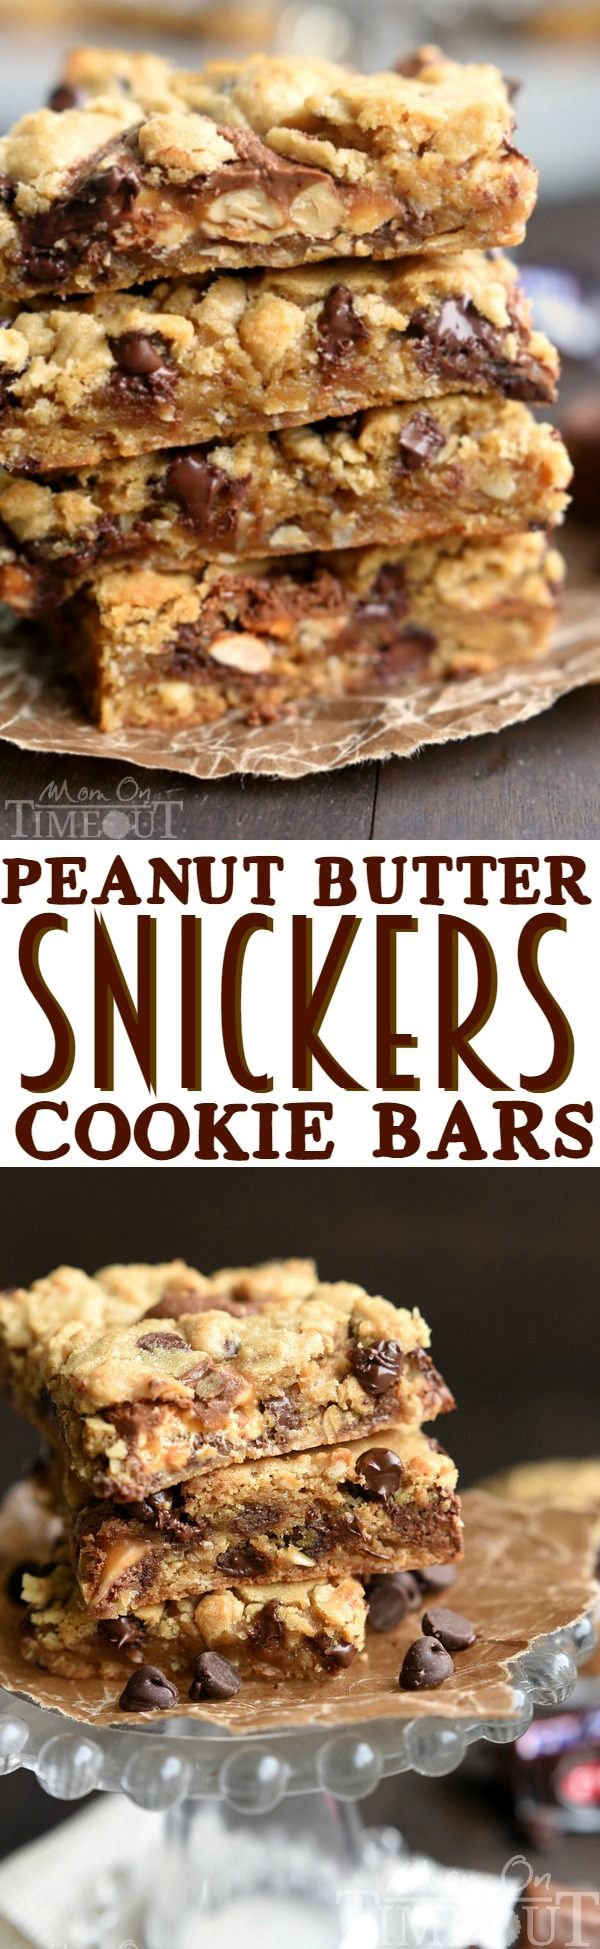 Peanut Butter Snickers Cookie Bars